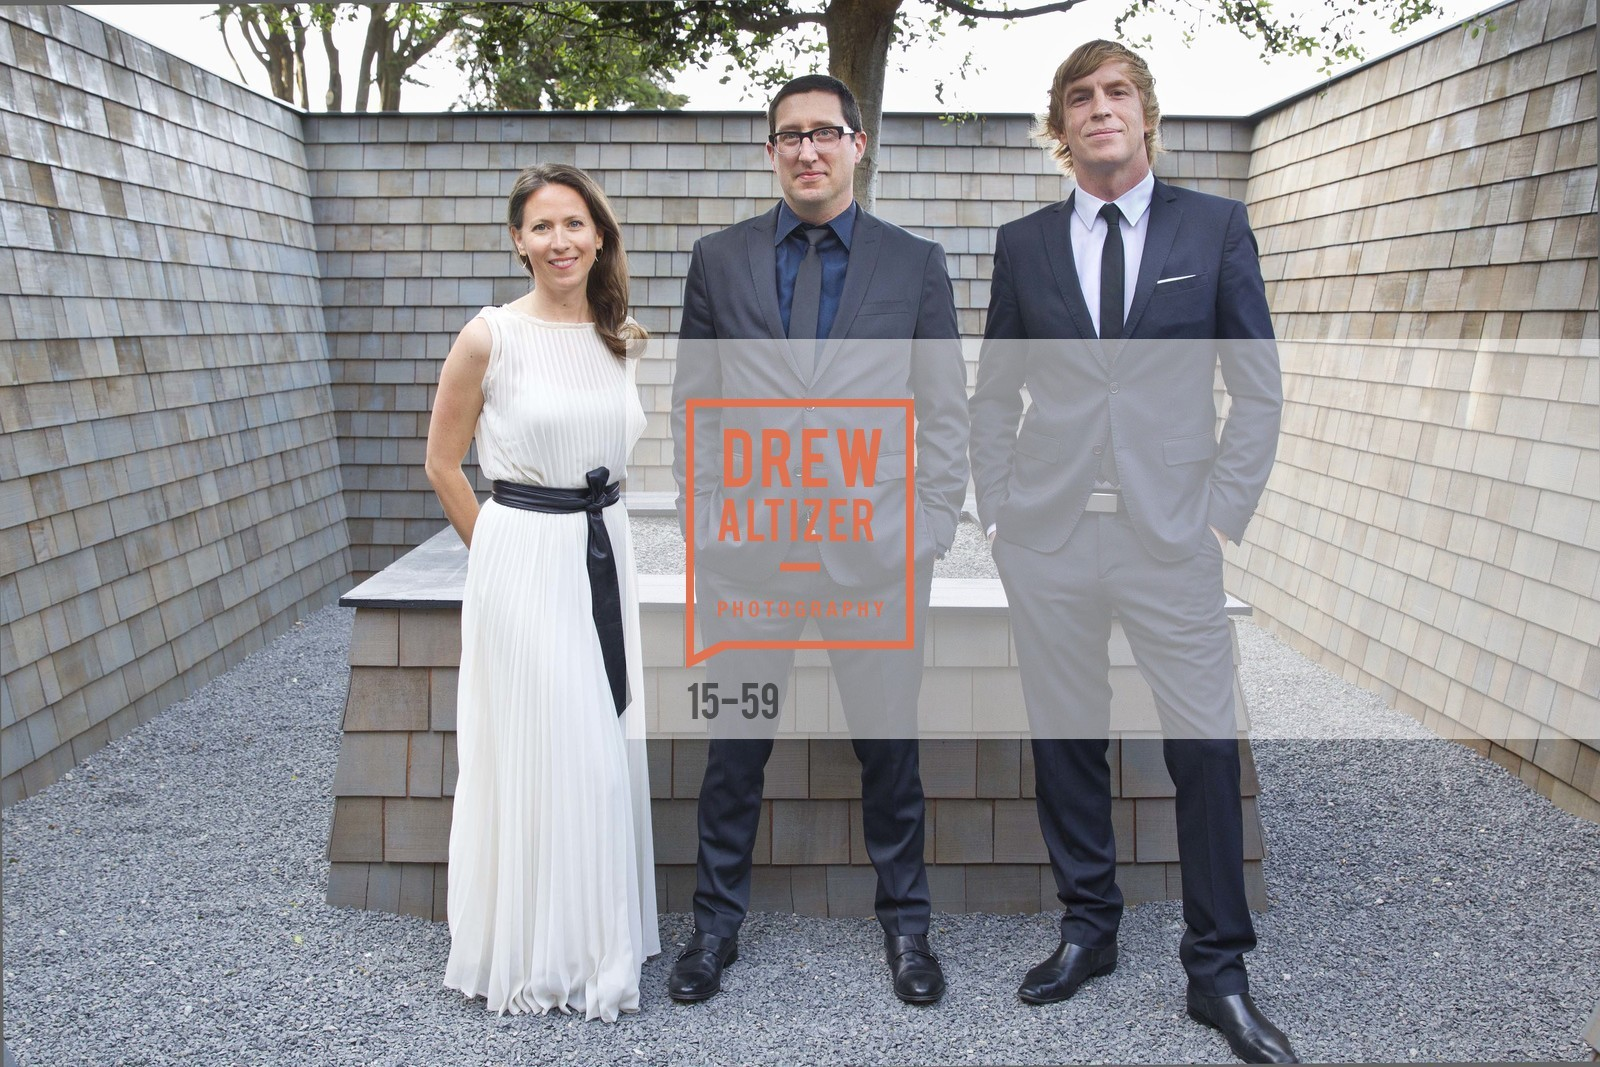 Jessica Weigley, Robo Gerson, Kevin Hackett, San Francisco Decorator Showcase Sponsors Preview Gala, 3630 Jackson Street, April 23rd, 2015,Drew Altizer, Drew Altizer Photography, full-service agency, private events, San Francisco photographer, photographer california